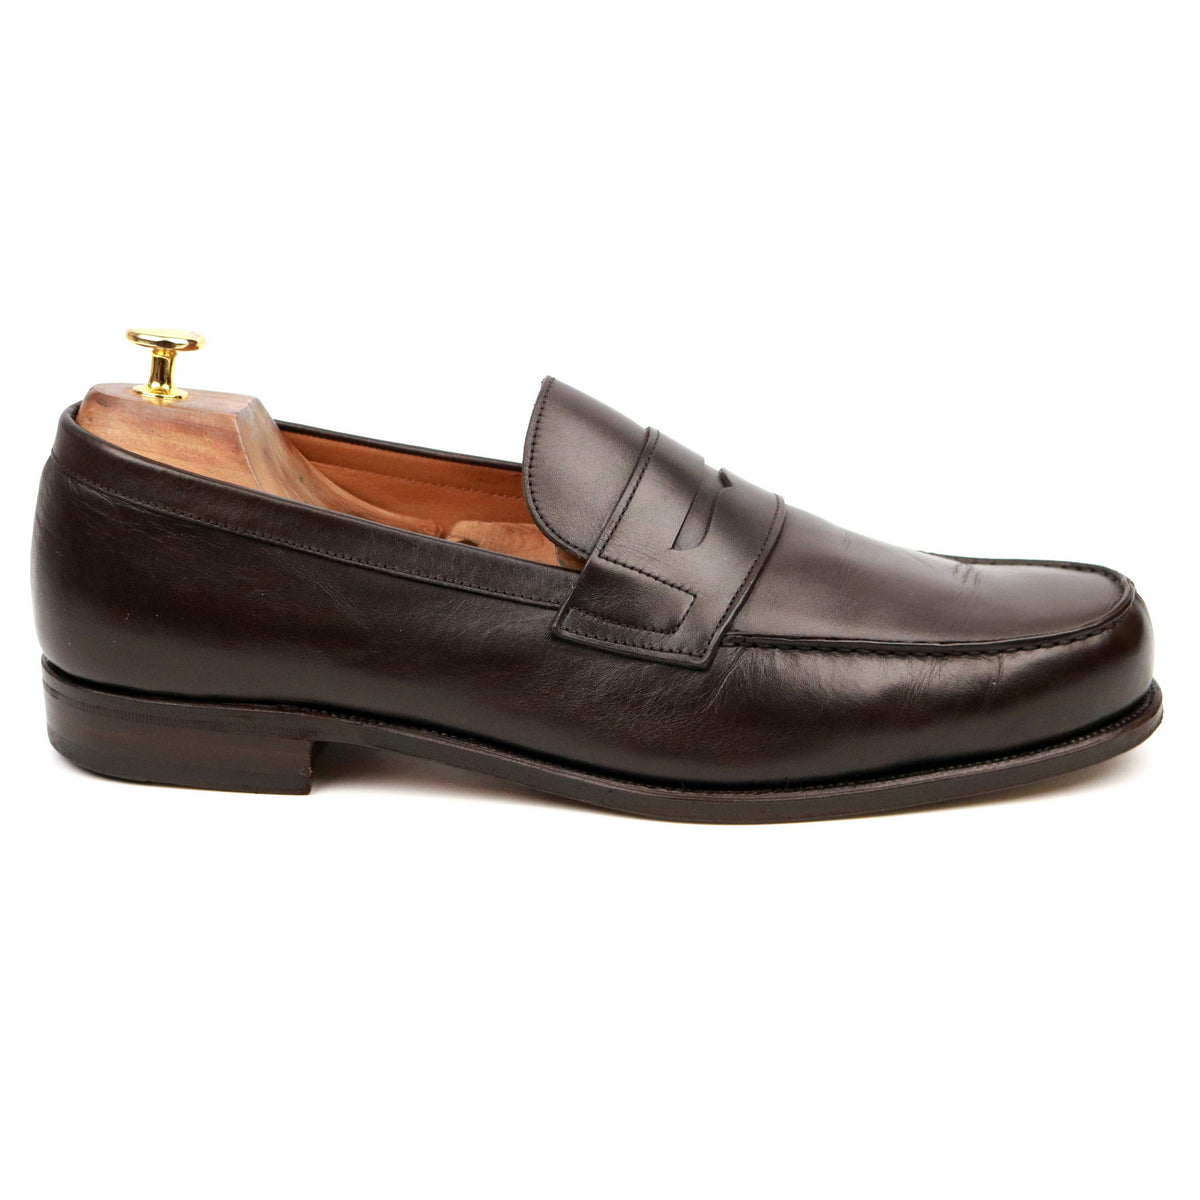 Carmina '80142 Alaro' Brown Leather Loafers UK 11.5 EE